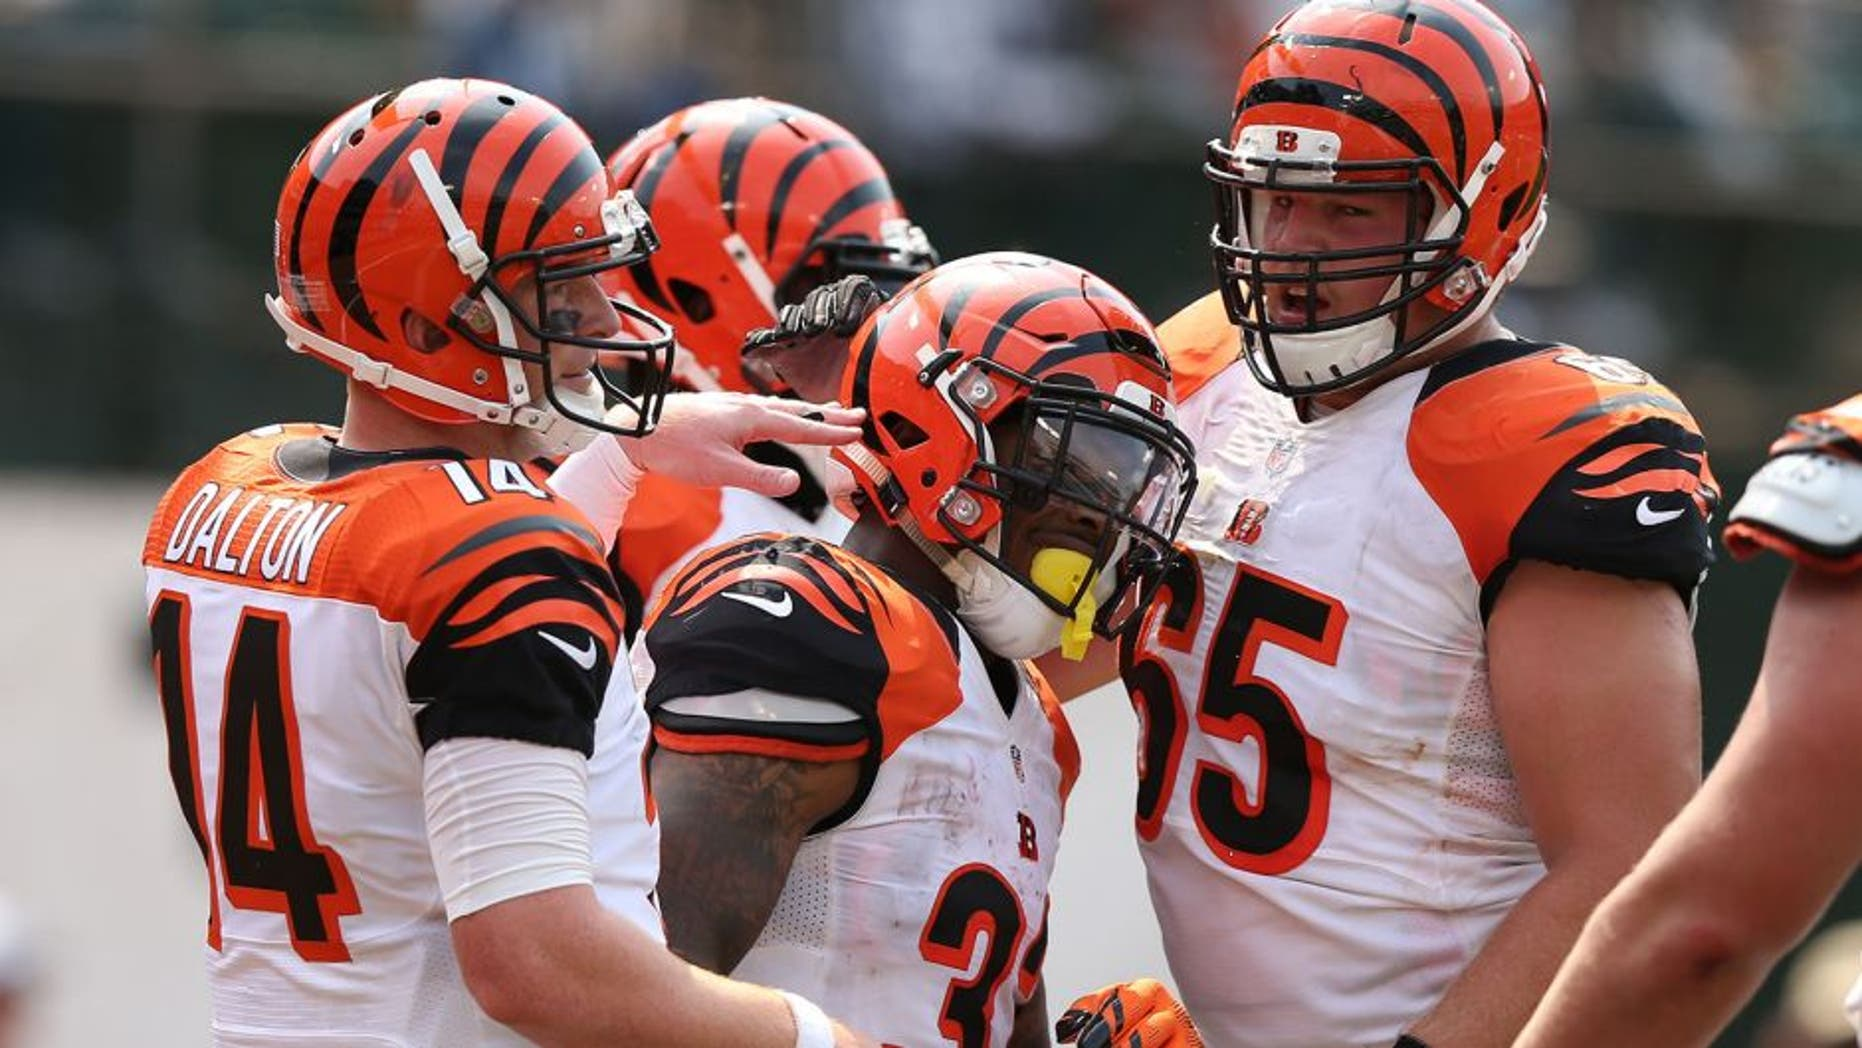 OAKLAND, CA - SEPTEMBER 13: Jeremy Hill #32 of the Cincinnati Bengals celebrates his second touchdown with Andy Dalton #14 and Clint Boling #65 in the first half of their NFL game against the Oakland Raiders at O.co Coliseum on September 13, 2015 in Oakland, California. (Photo by Ezra Shaw/Getty Images)